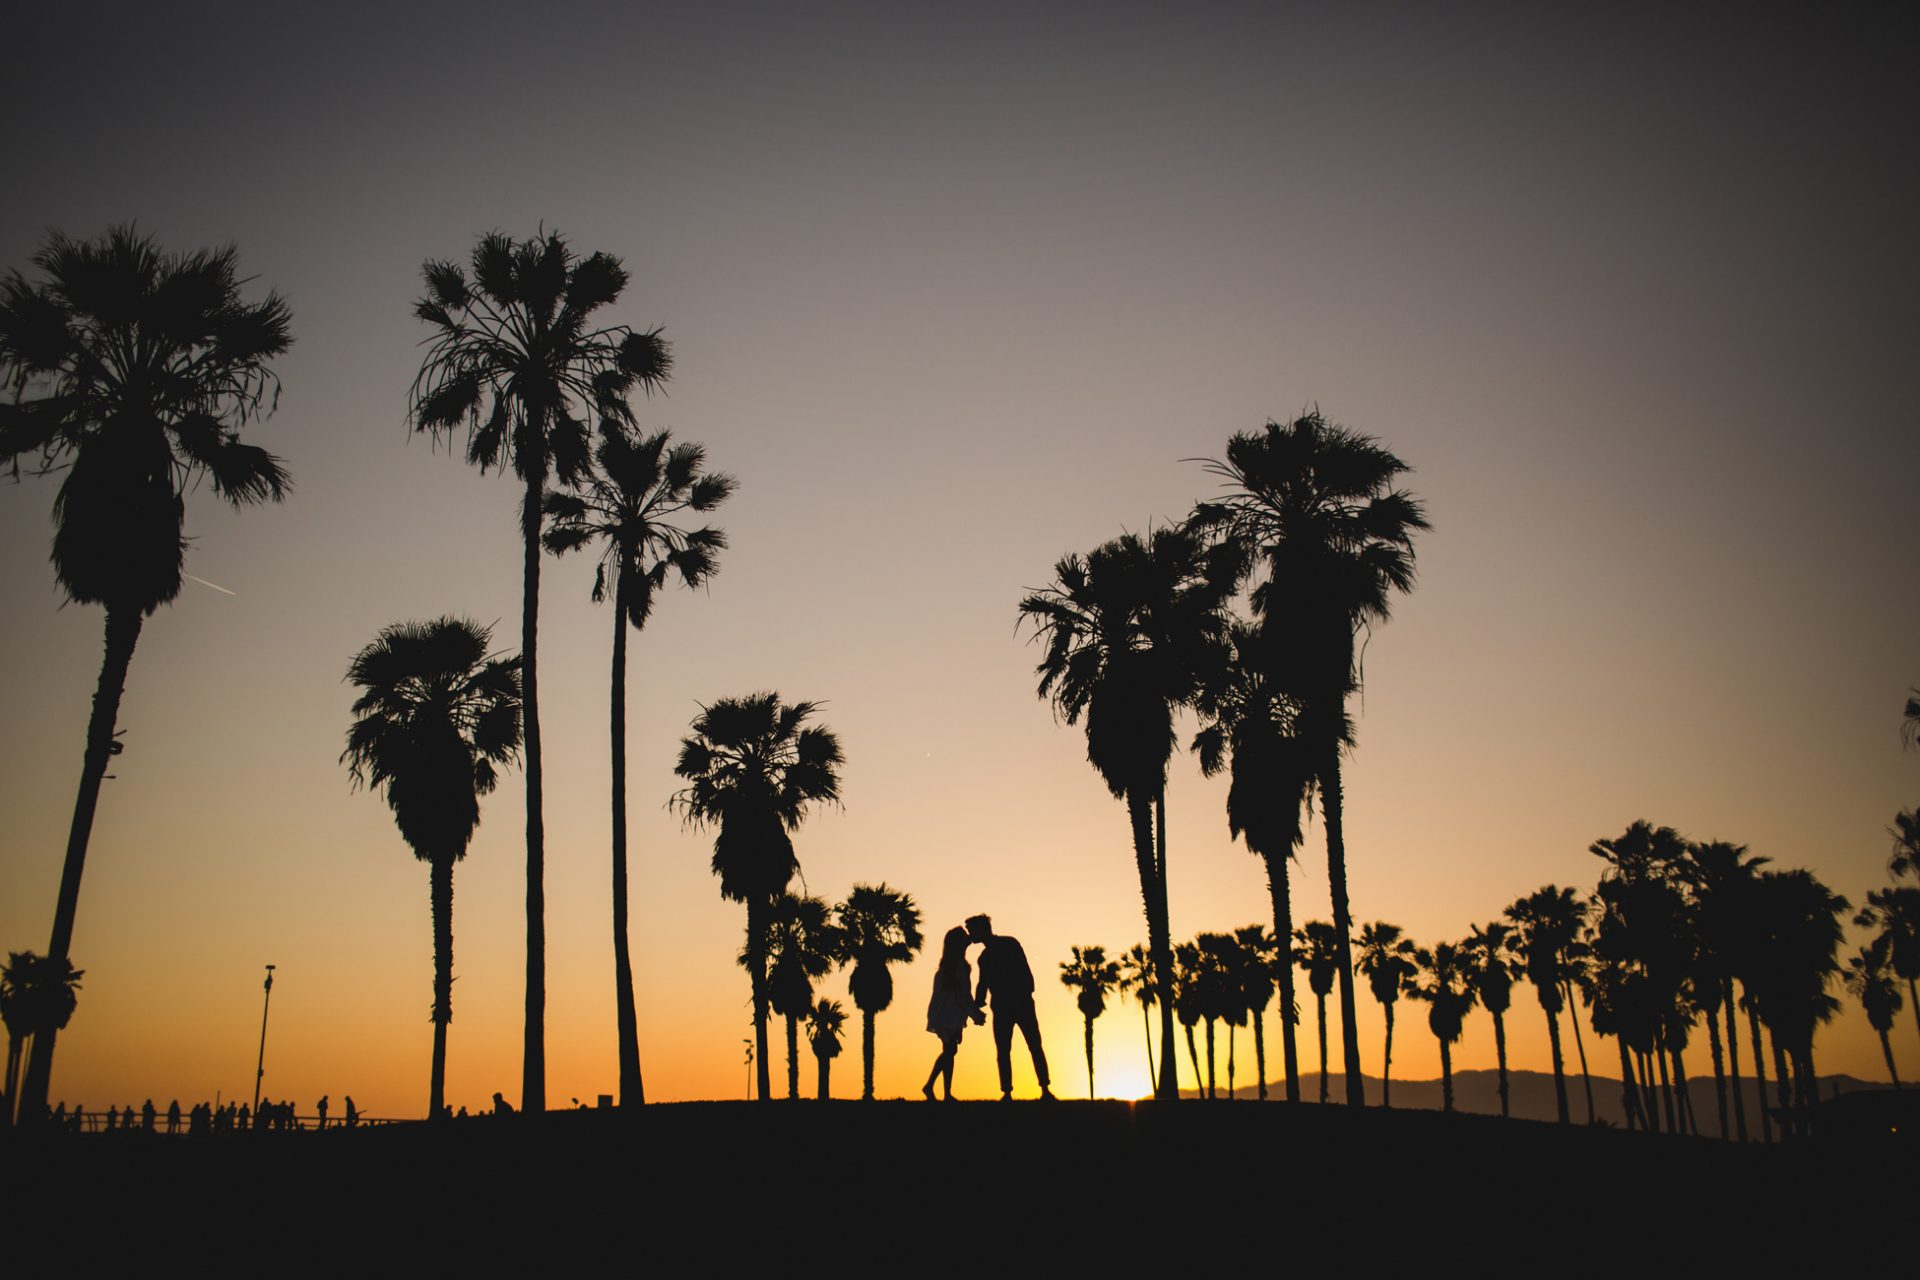 best-top-los-angeles-oklahoma-destination-engagement-photographer-hipster-modern-quirky-editorial-romantic-epic-3-sunset-palm-trees-silhouette